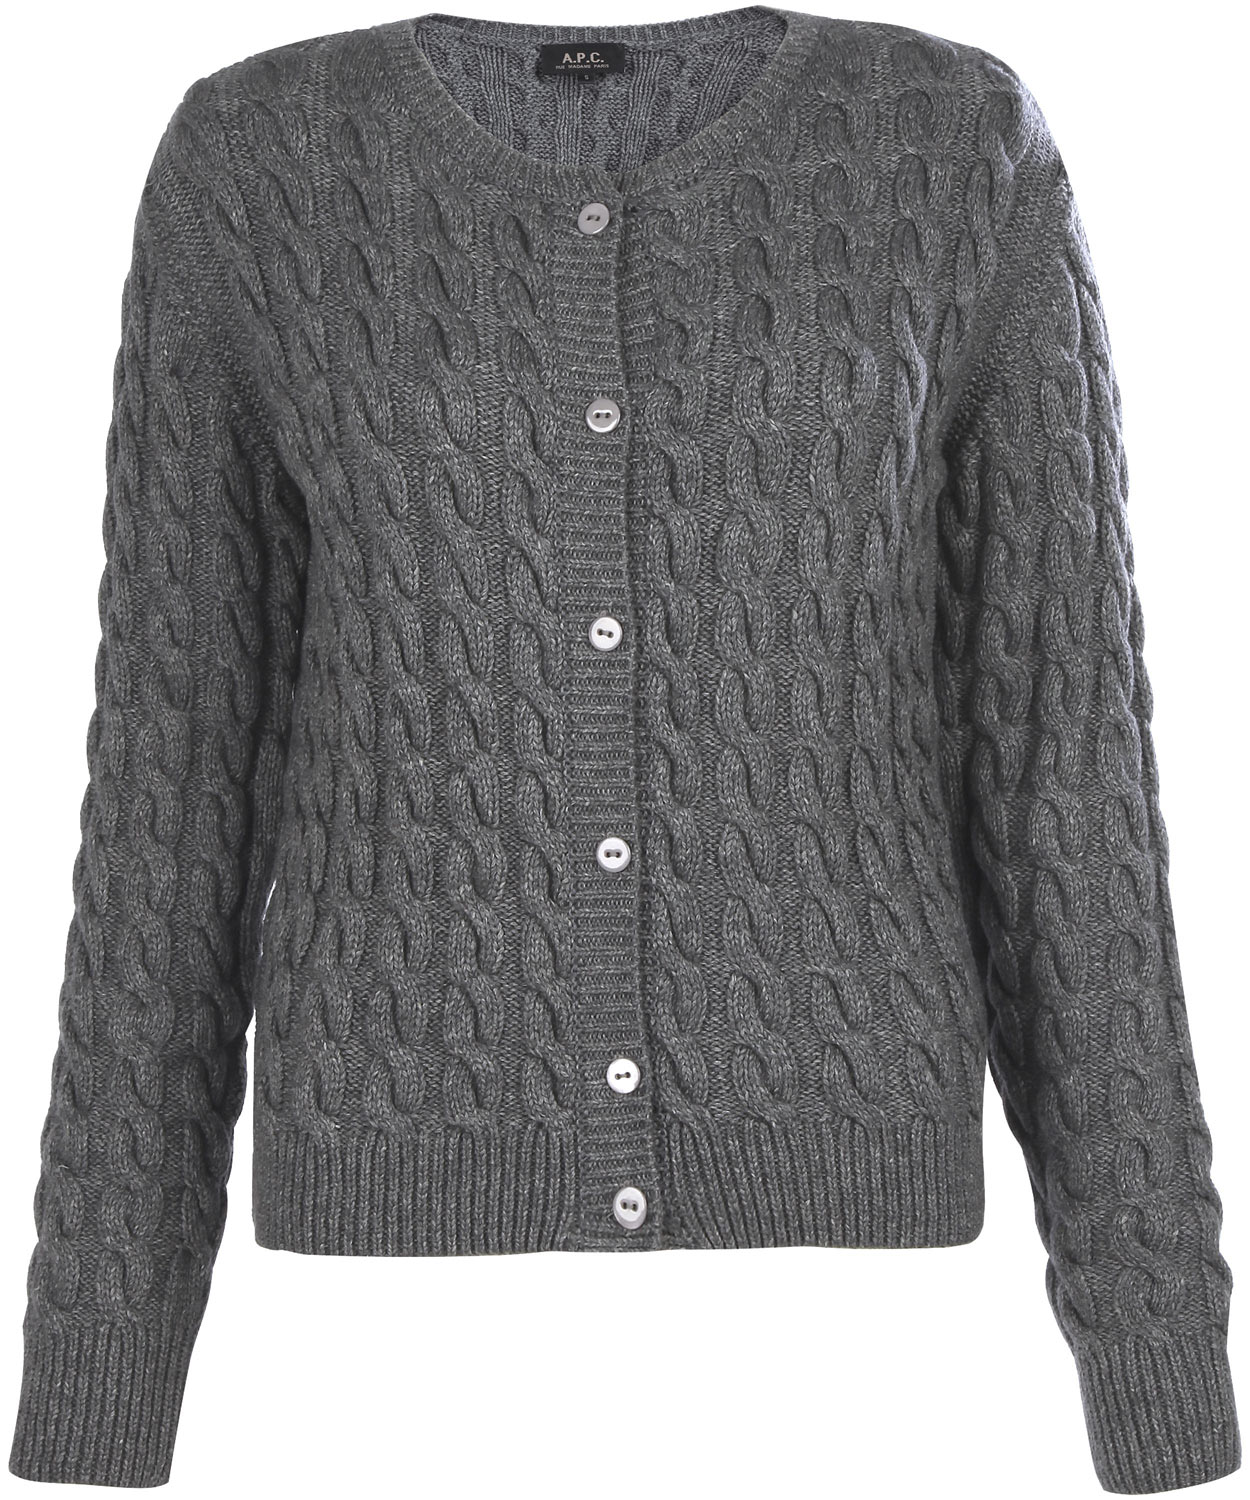 A.p.c. Grey Cable Knit Cardigan in Gray | Lyst